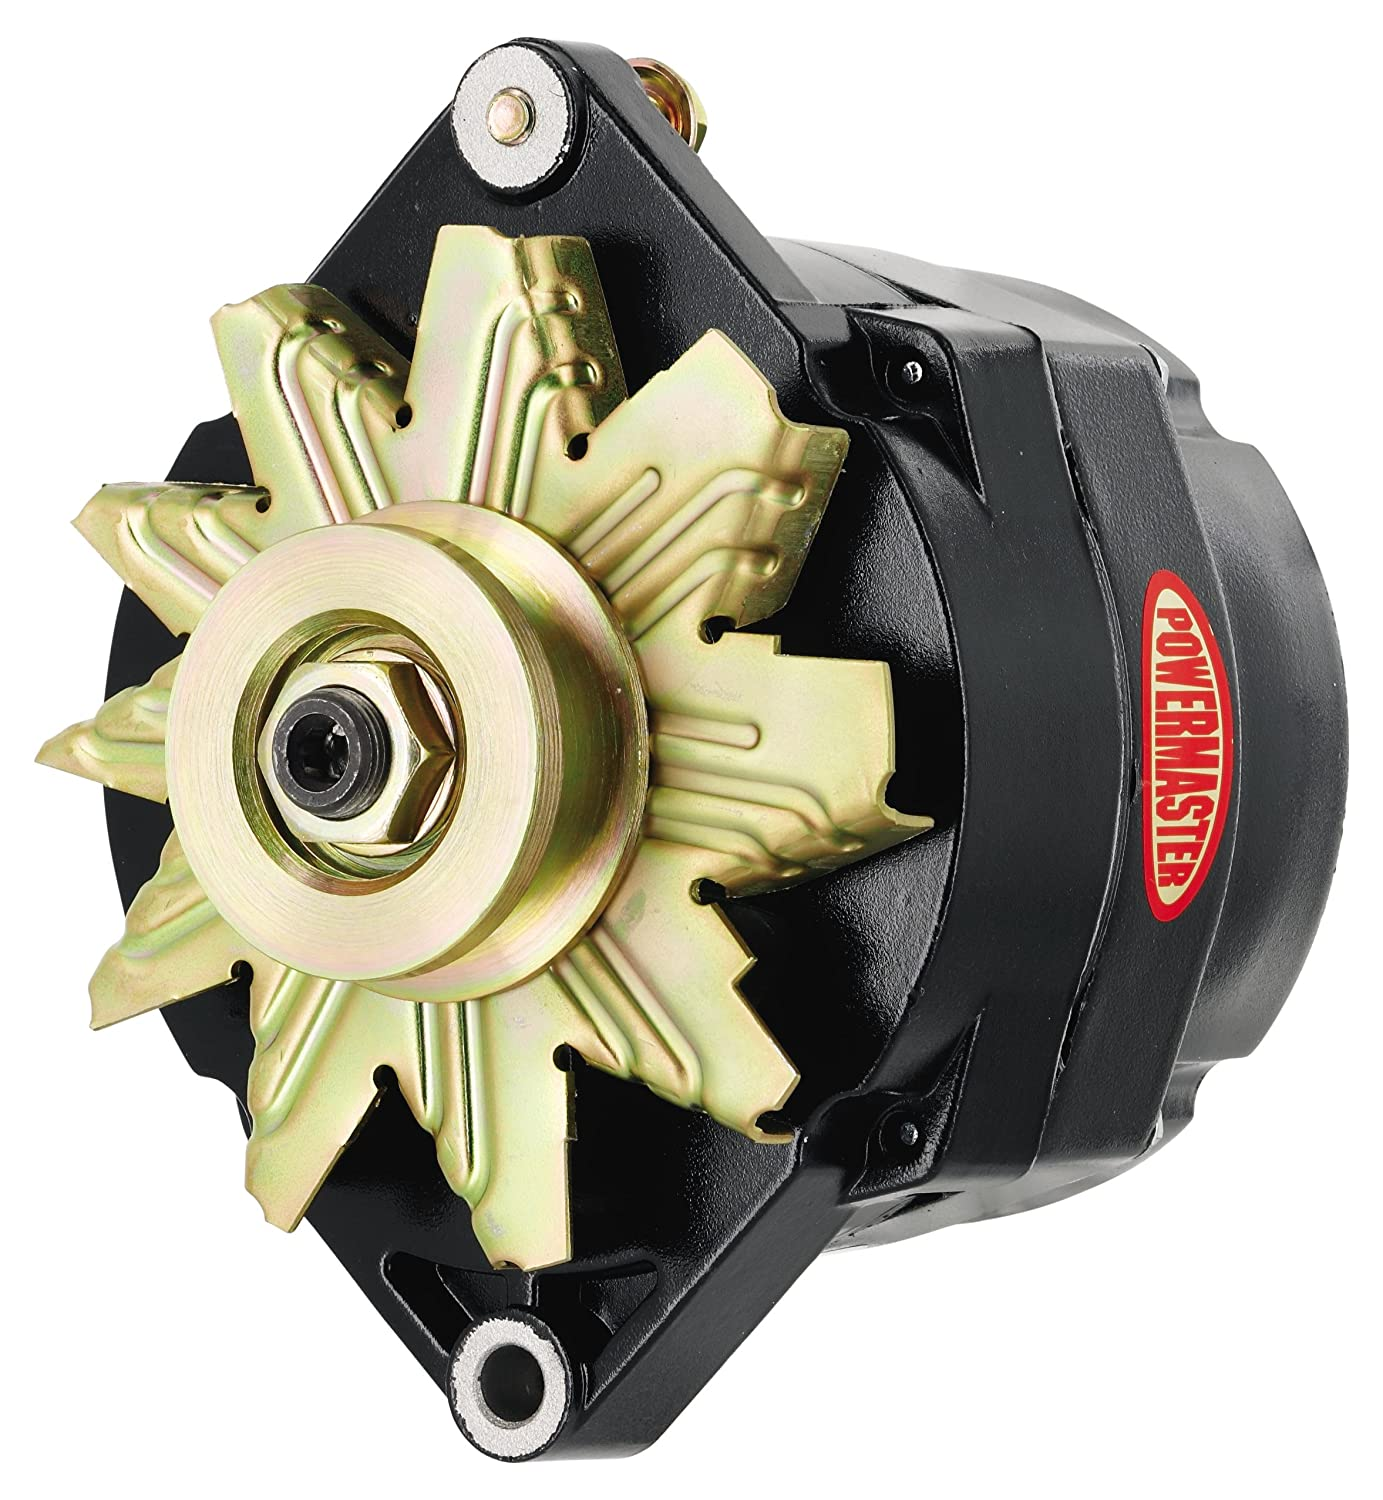 Powermaster Performance 8-56101 Black Alternator Upgrade 100A 1V Pulley 1 Wire Motorola Replacement 1 Mating flange